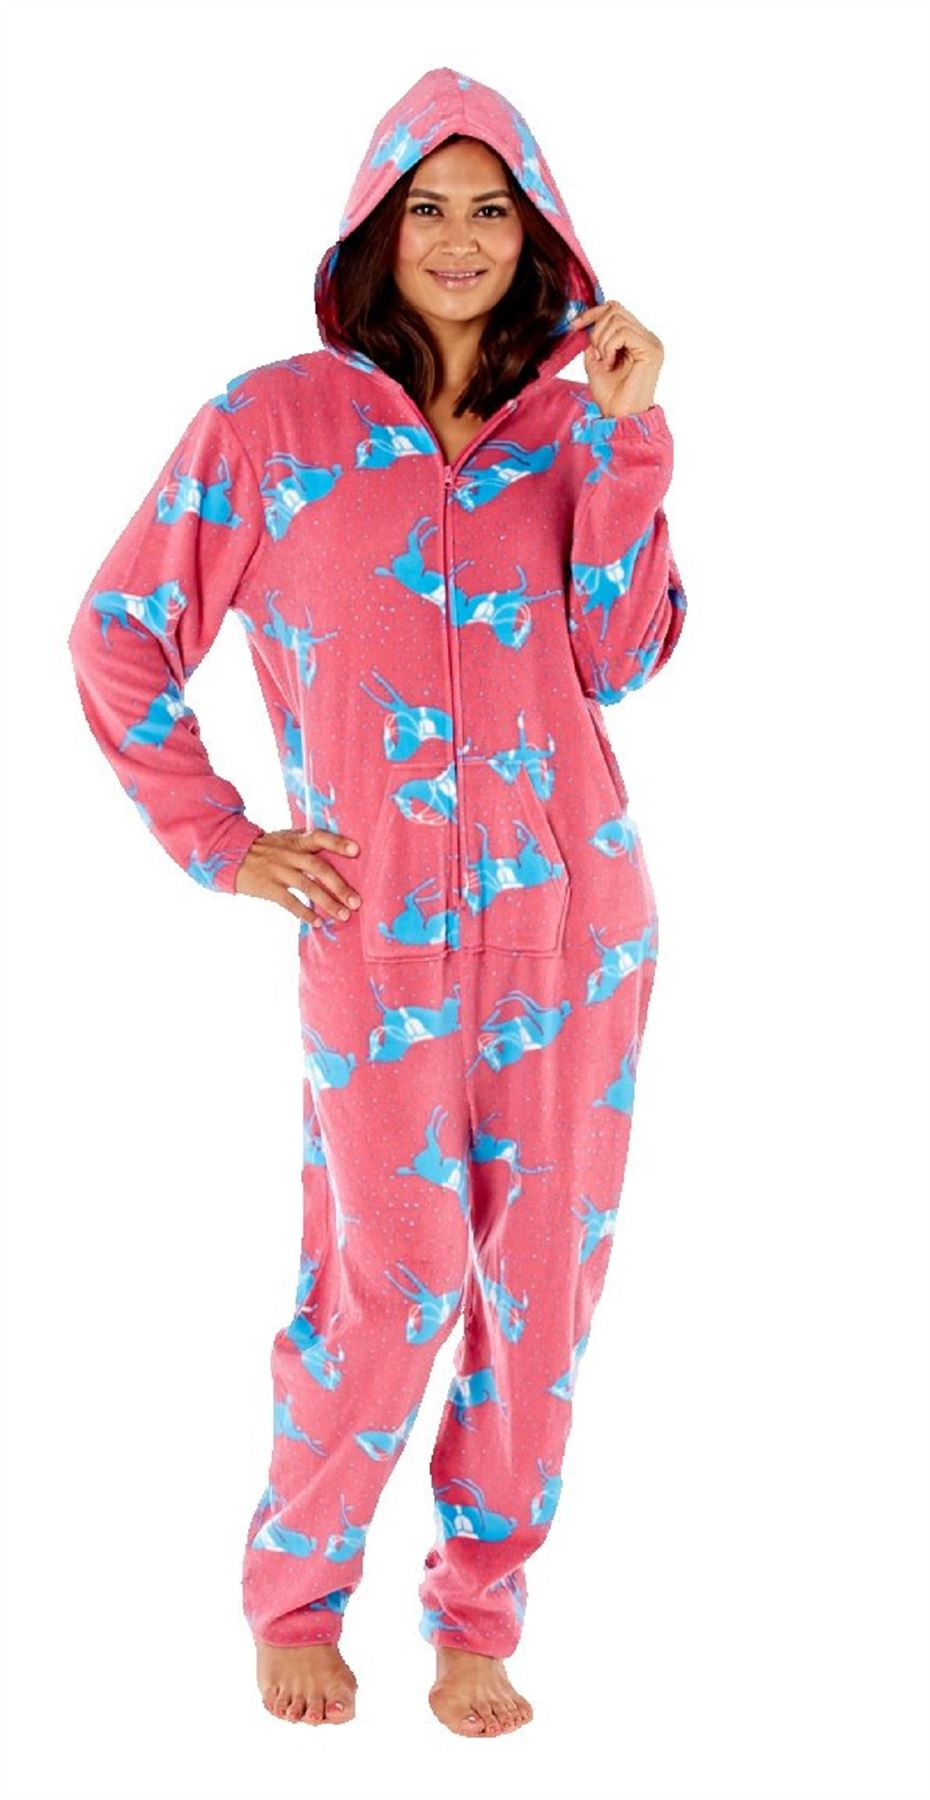 Find great deals on eBay for womens fleece pajamas. Shop with confidence. Skip to main content. eBay: Women's Aria 2-piece Fleece Pajama Set Choose VARIETY OF SIZES AND COLORS See more like this. Womens Nightmare Before Christmas Jack Skellington Fleece Pajamas Pajama Pants.